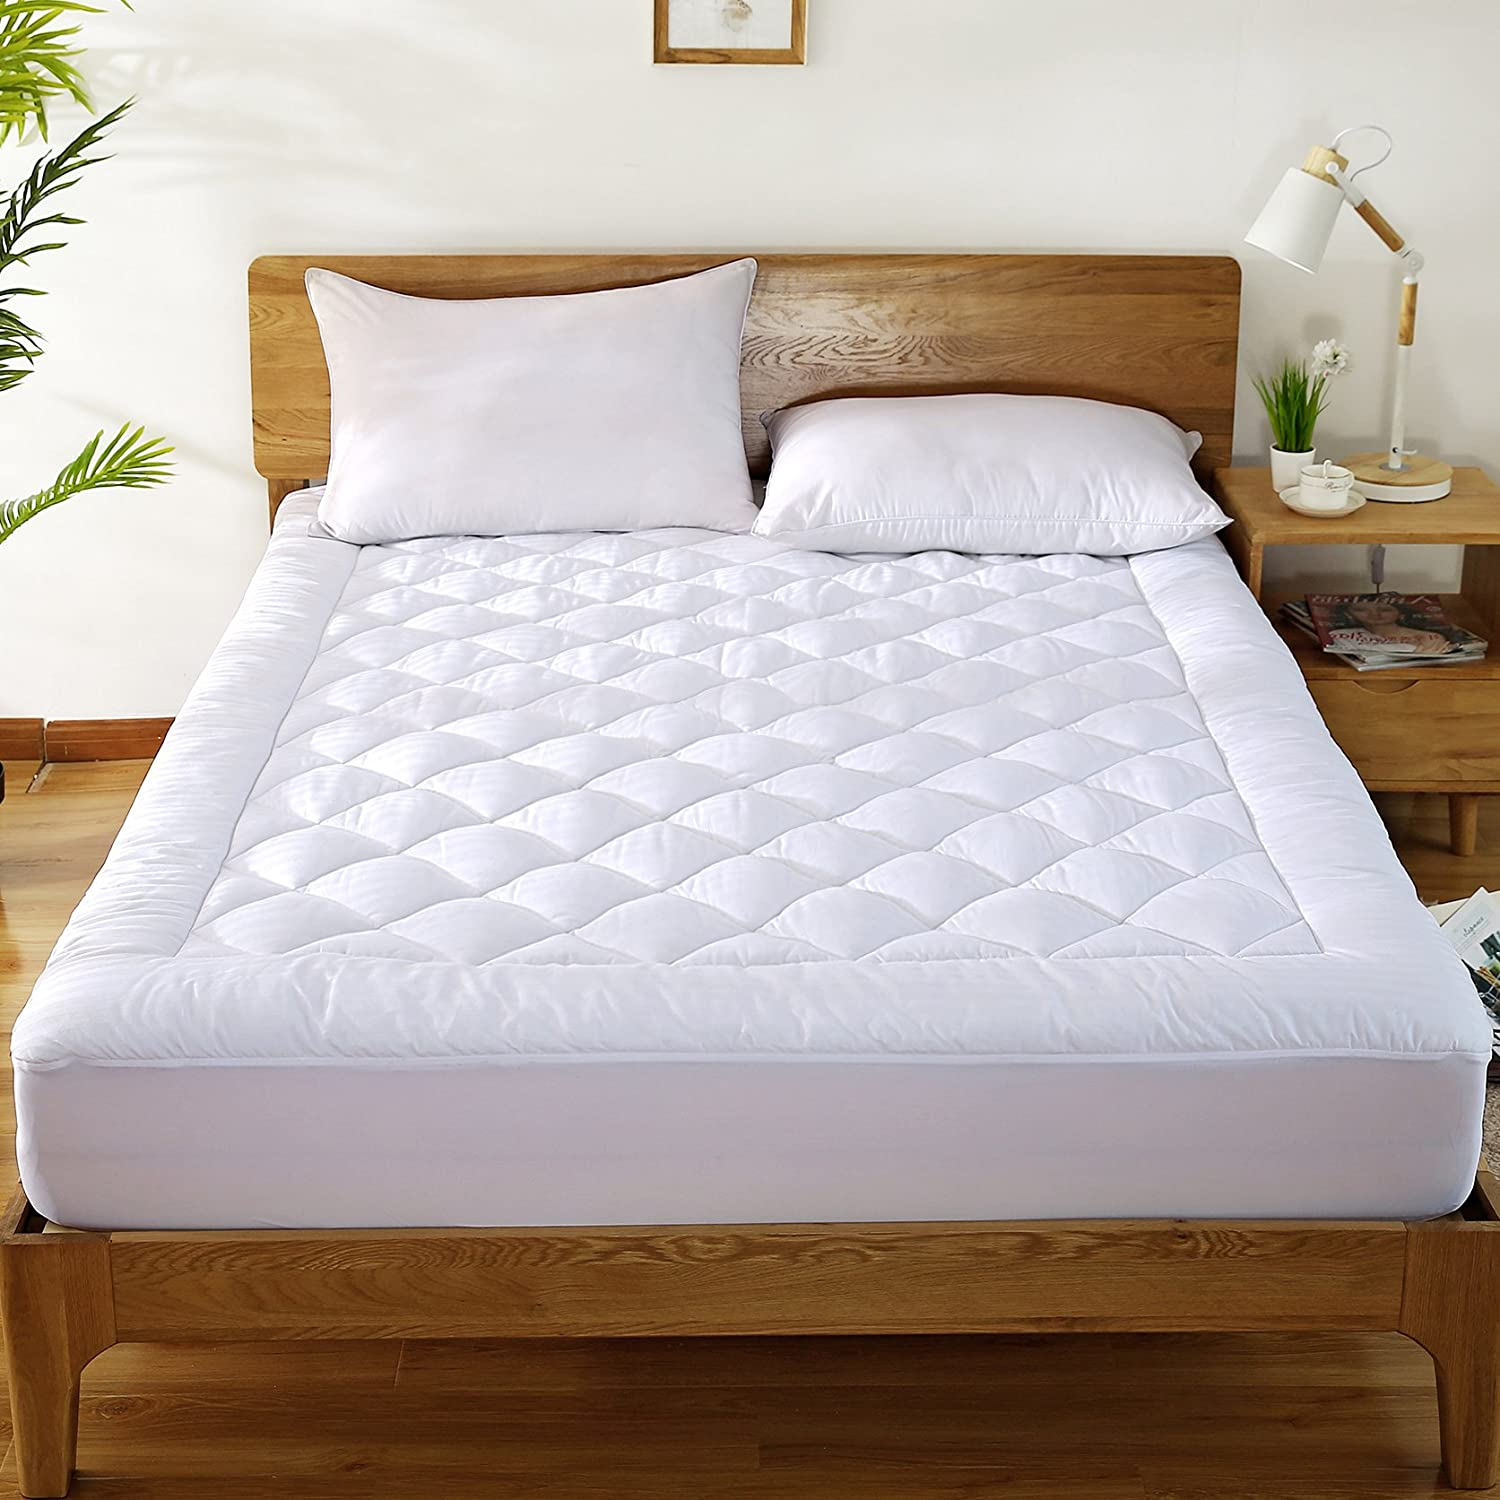 "Mattress Pad Cover with 18"" Deep Pocket 300TC Cotton Down Mattress Topper By HYPNOS Mattress Topper"